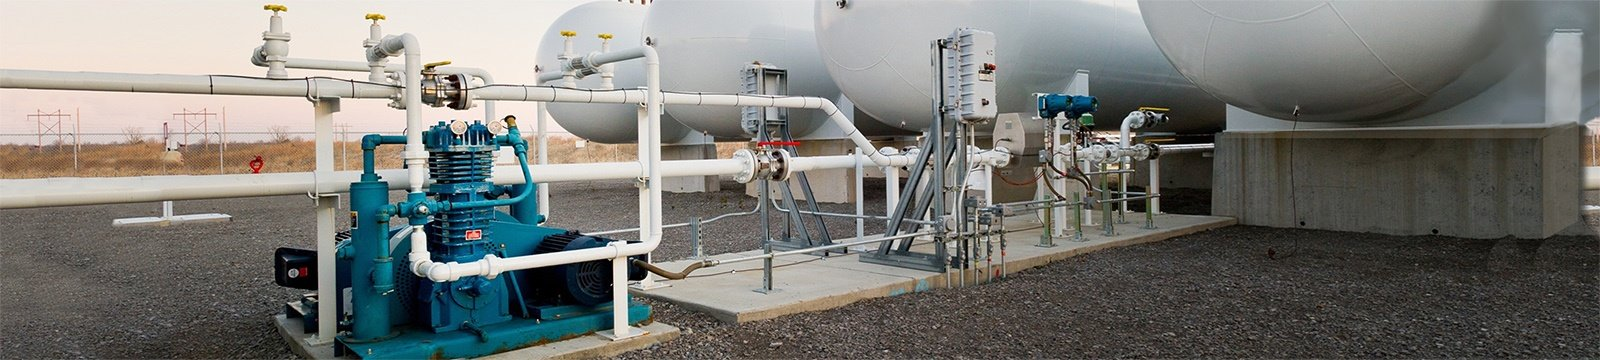 NGL LPG Storage & Handling Equipment - Pumps - Compressors - Tank Piers - Vaporizers.jpg